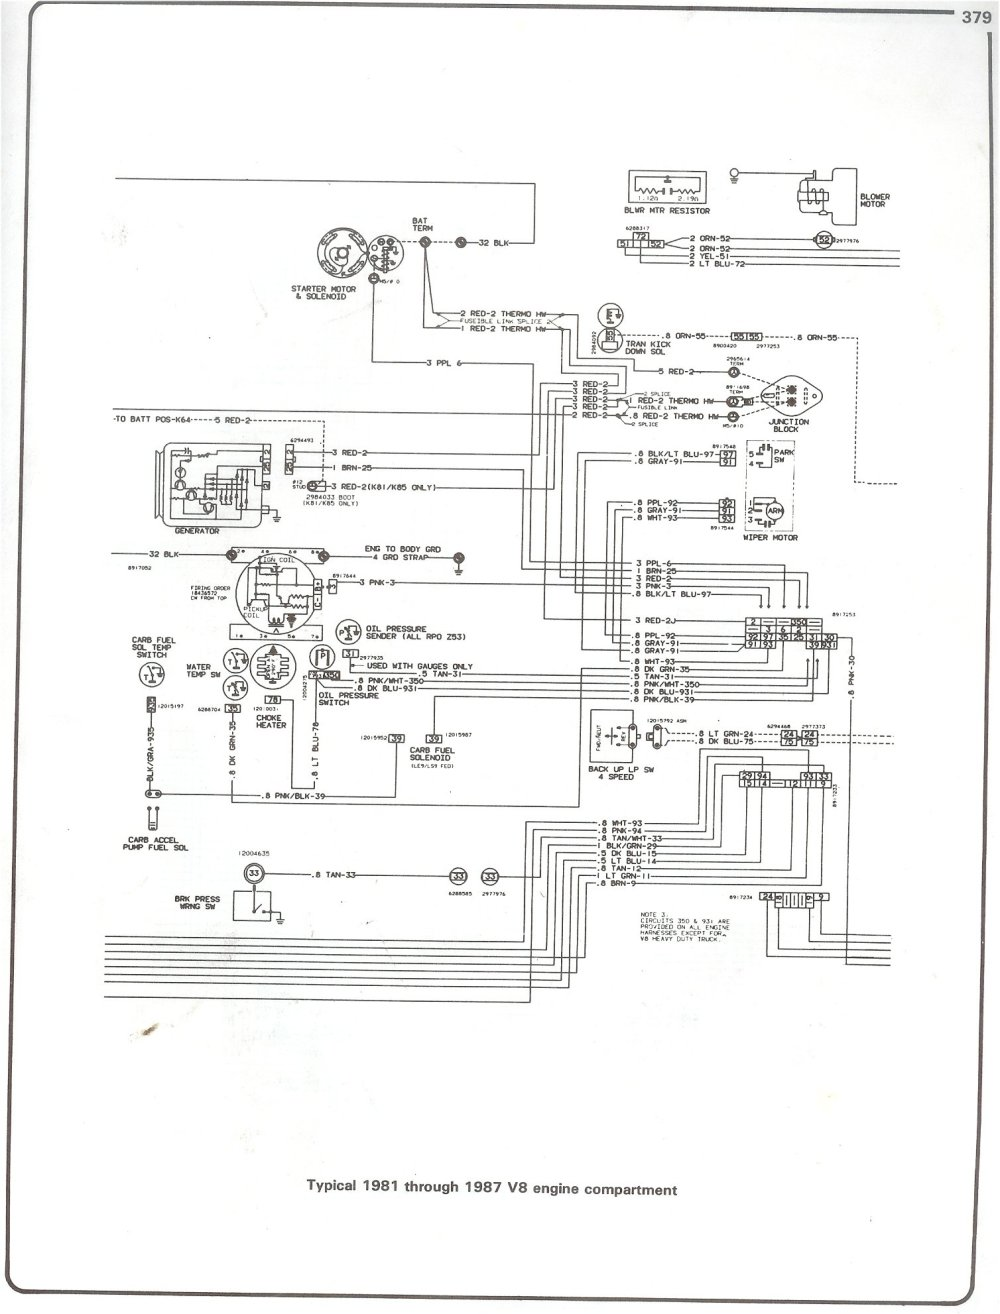 medium resolution of complete 73 87 wiring diagrams 1999 suburban radio wiring diagram 81 87 v8 engine compartment